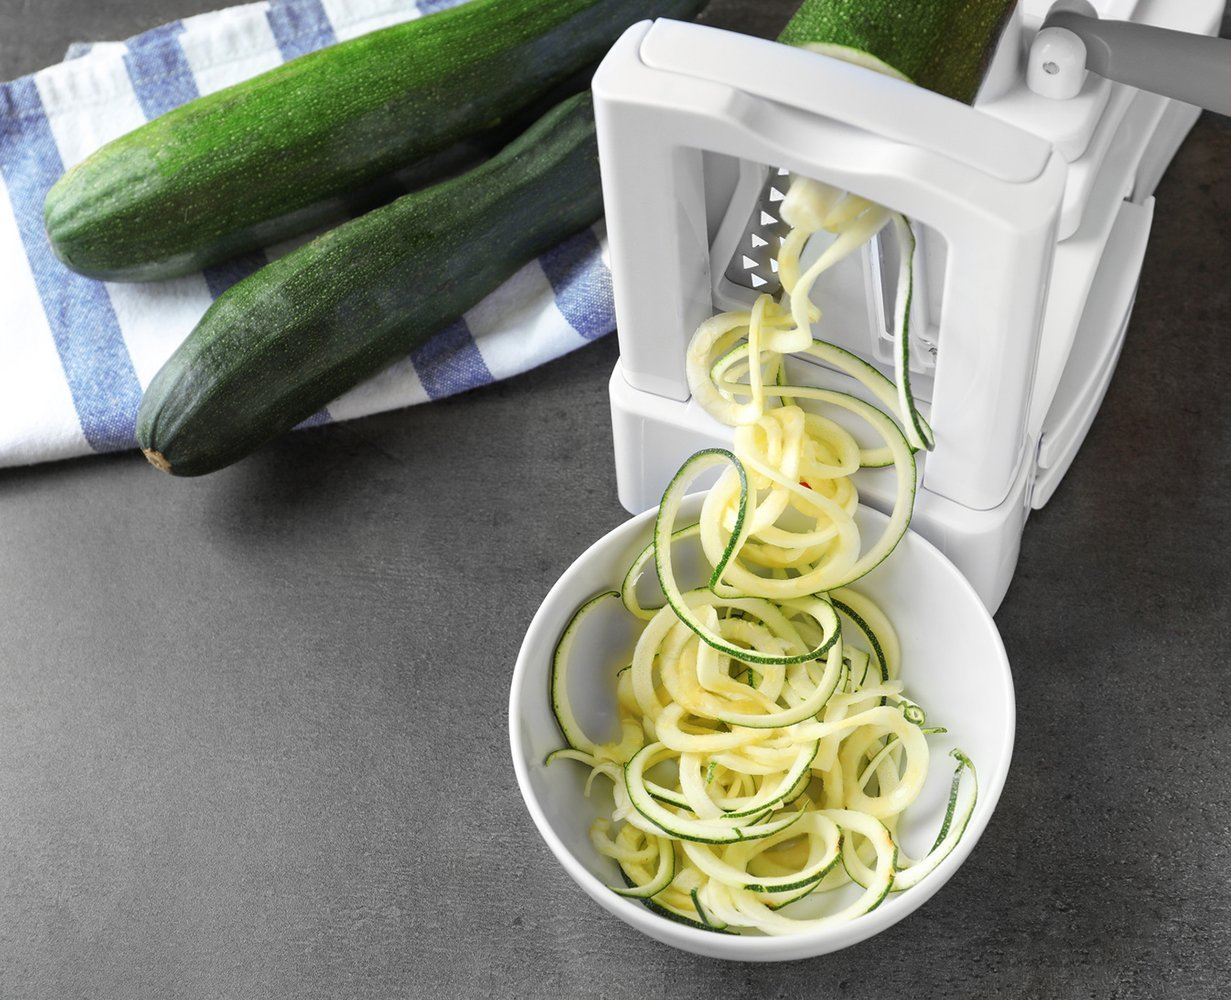 Spiralizer Veggie Slicer - This handy gadget is a gluten-free person's best friend (like me!). In the summer I use this to make zuchinni noodles for our backyard pesto - and in the winter I like to spiralize up some sweet potatoes to fry up in a cast iron pan for a breakfast hash.